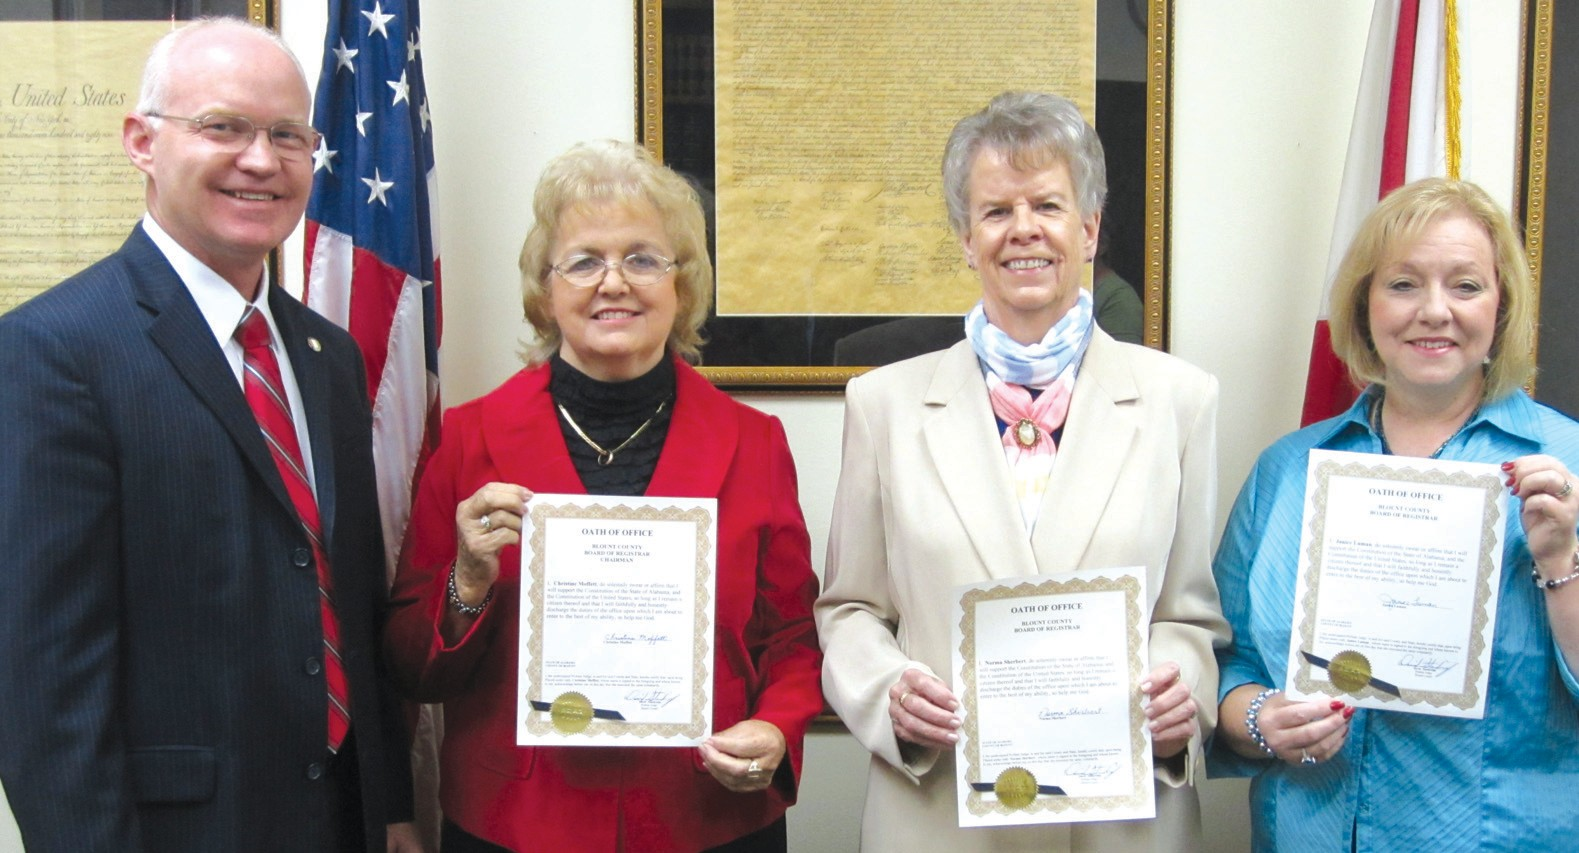 County Board of Registrars members (from left) Christine Moffett, Norma Sherbert, and Janice Luman prepare for a busy election year as they are sworn in earlier this week by Probate Judge David Standridge, at left. They will handle registration and validation of Blount County voters during their four-year terms.